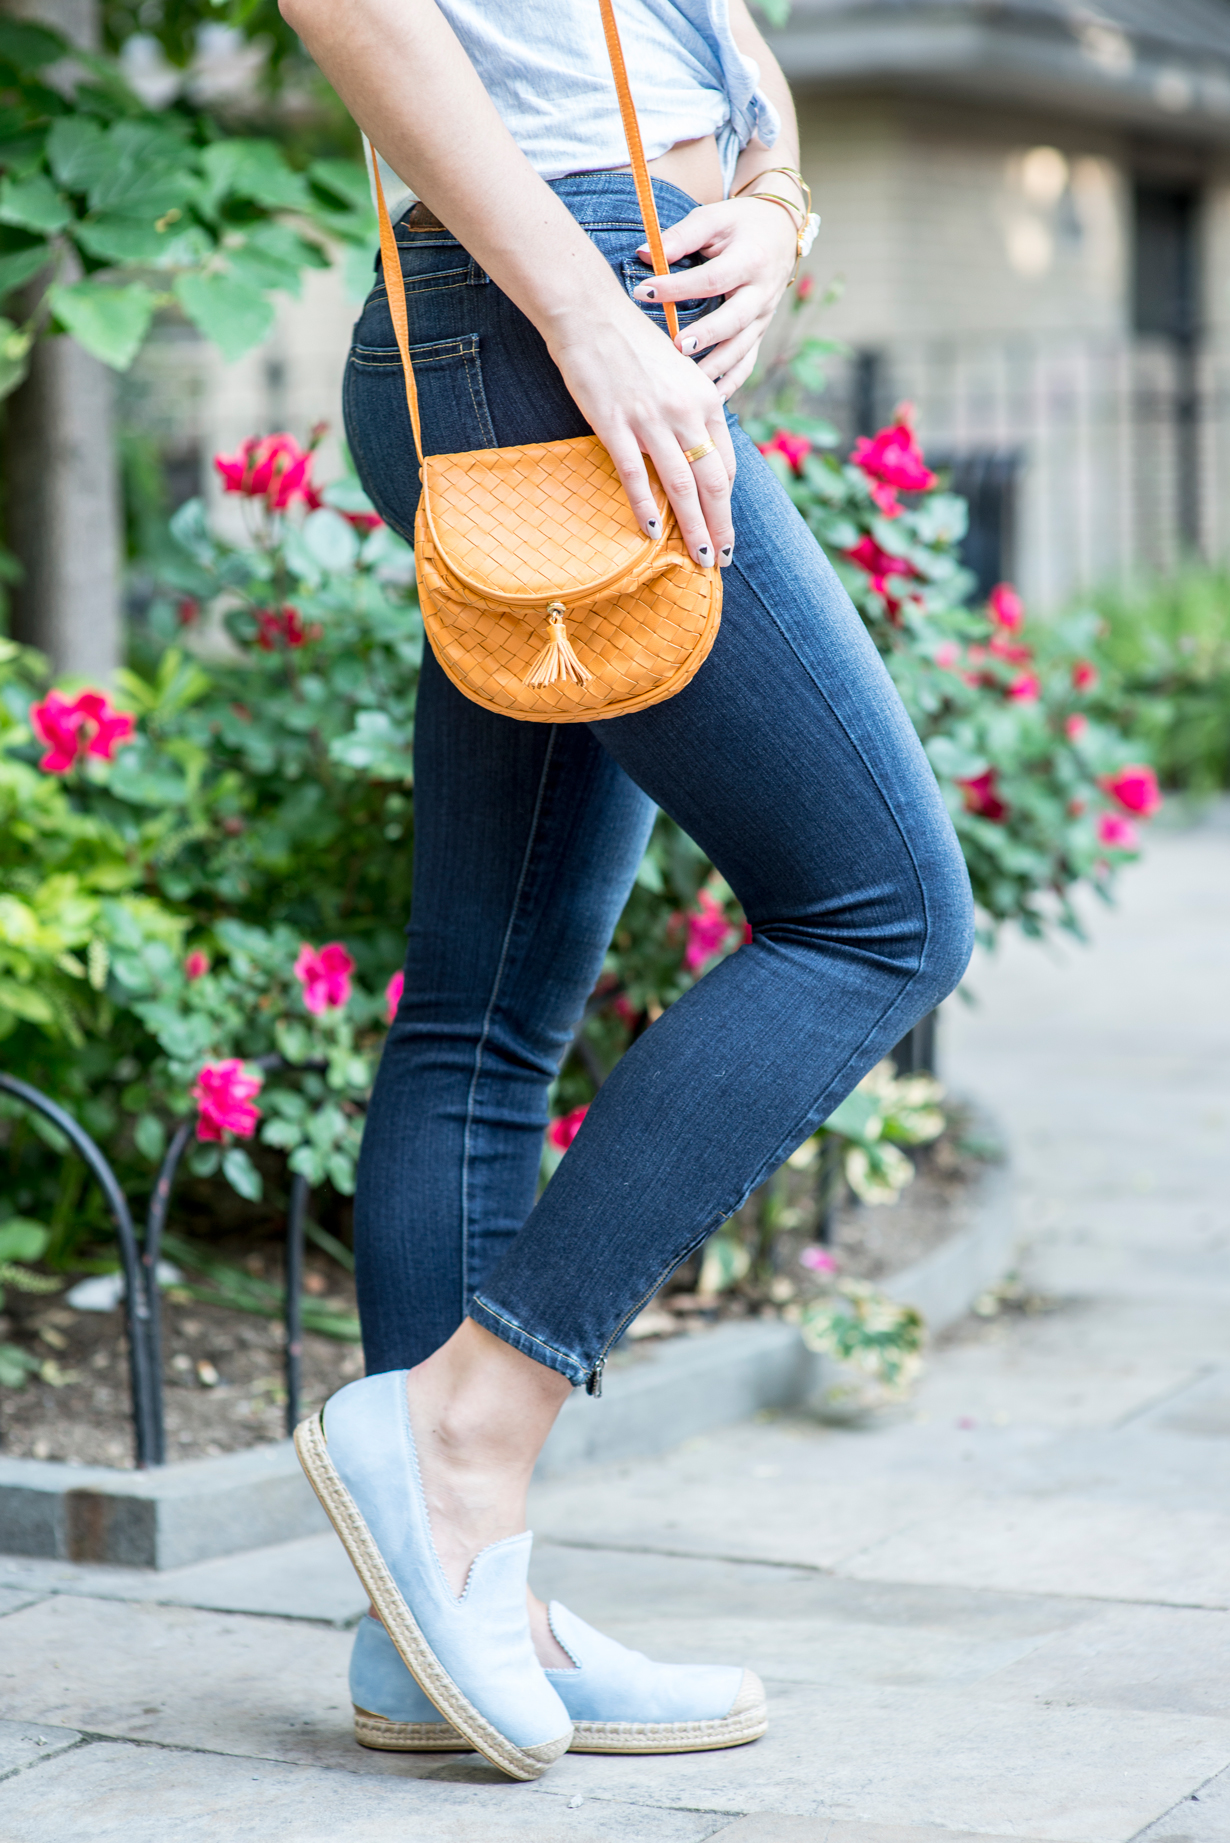 paige-denim-bottega-venetta-bag-stuart-weitzman